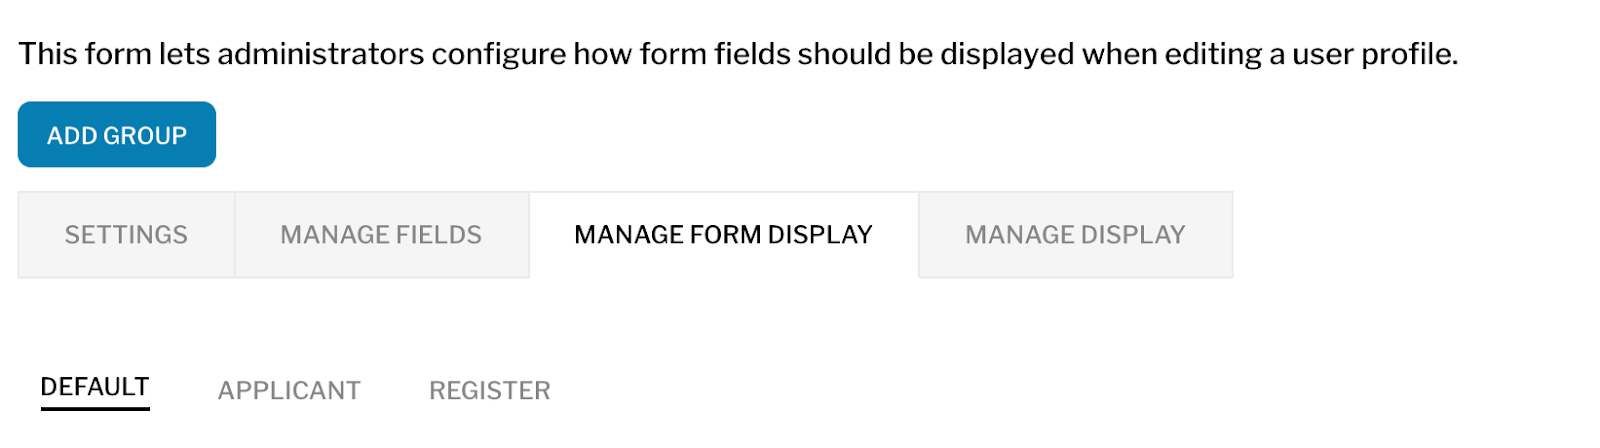 User manage form display page